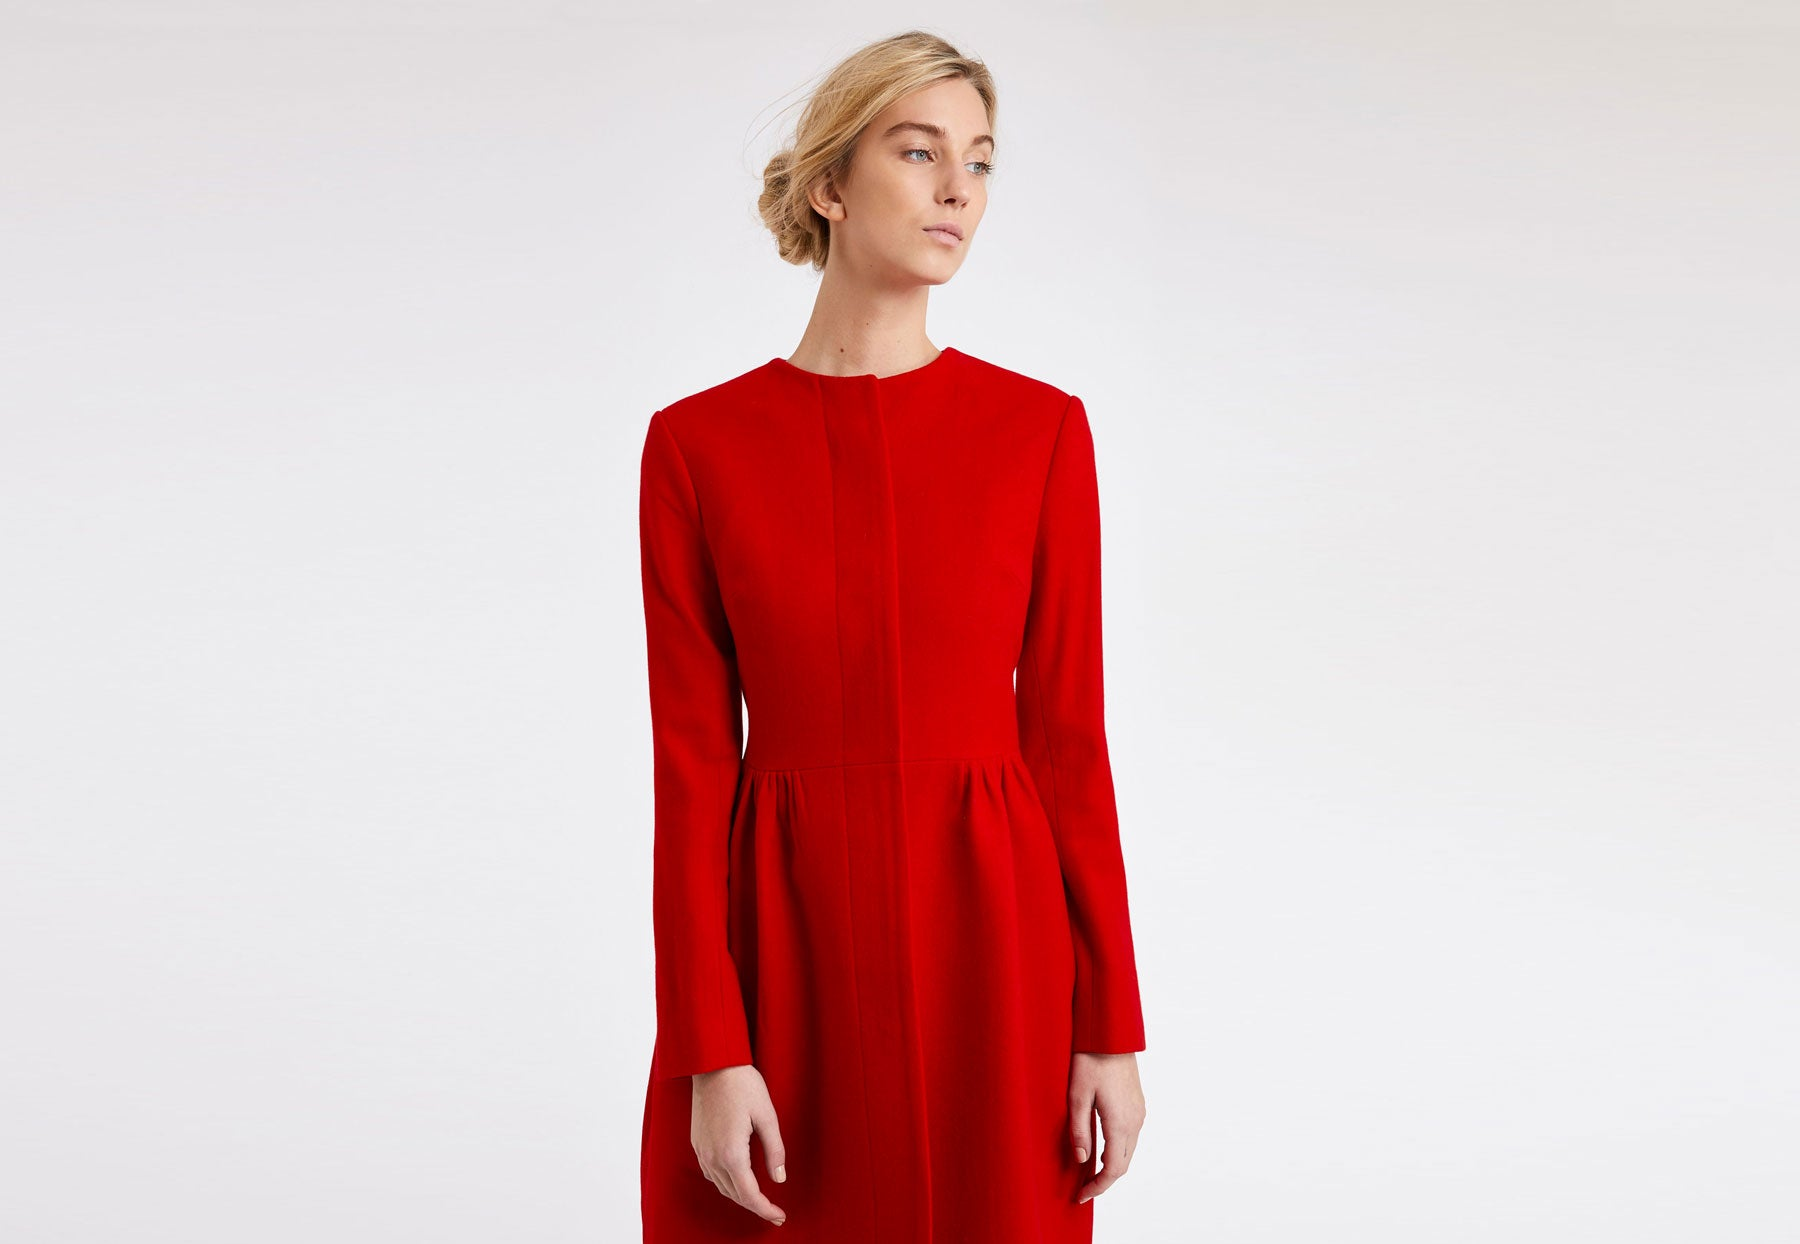 Skirted Coat in scarlet red